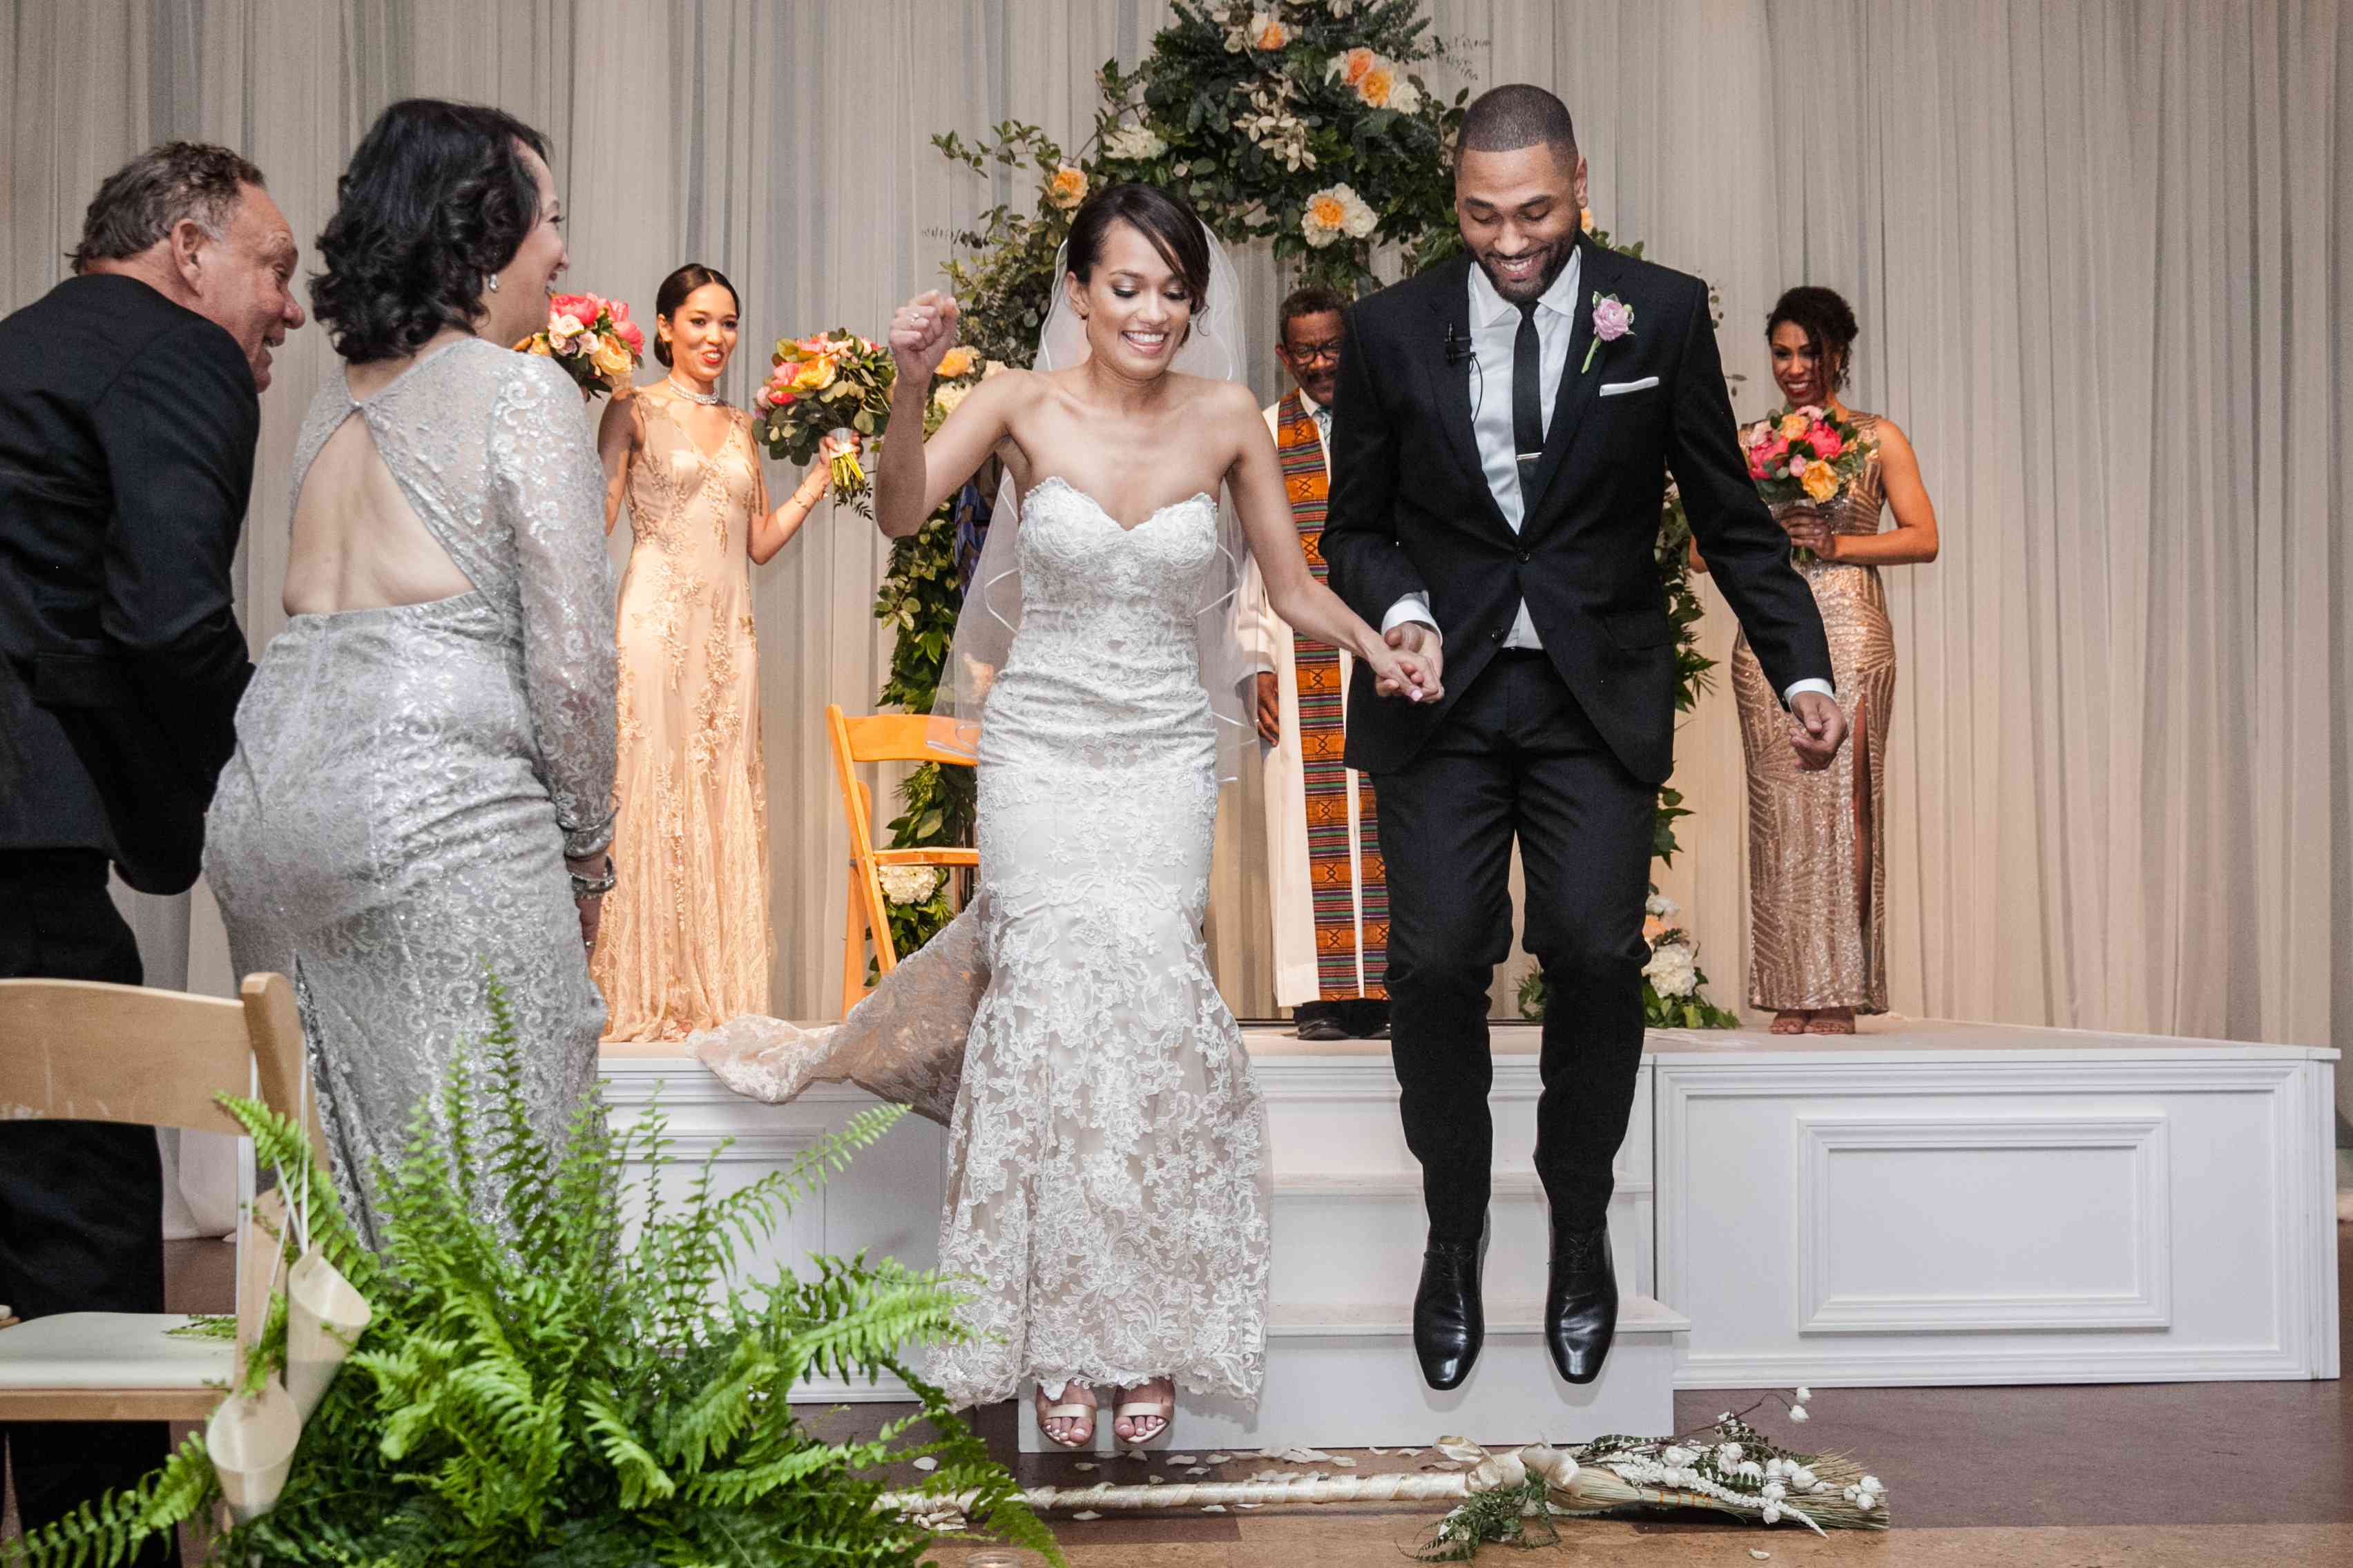 <p>Bride and Groom Jump the Broom</p><br><br>